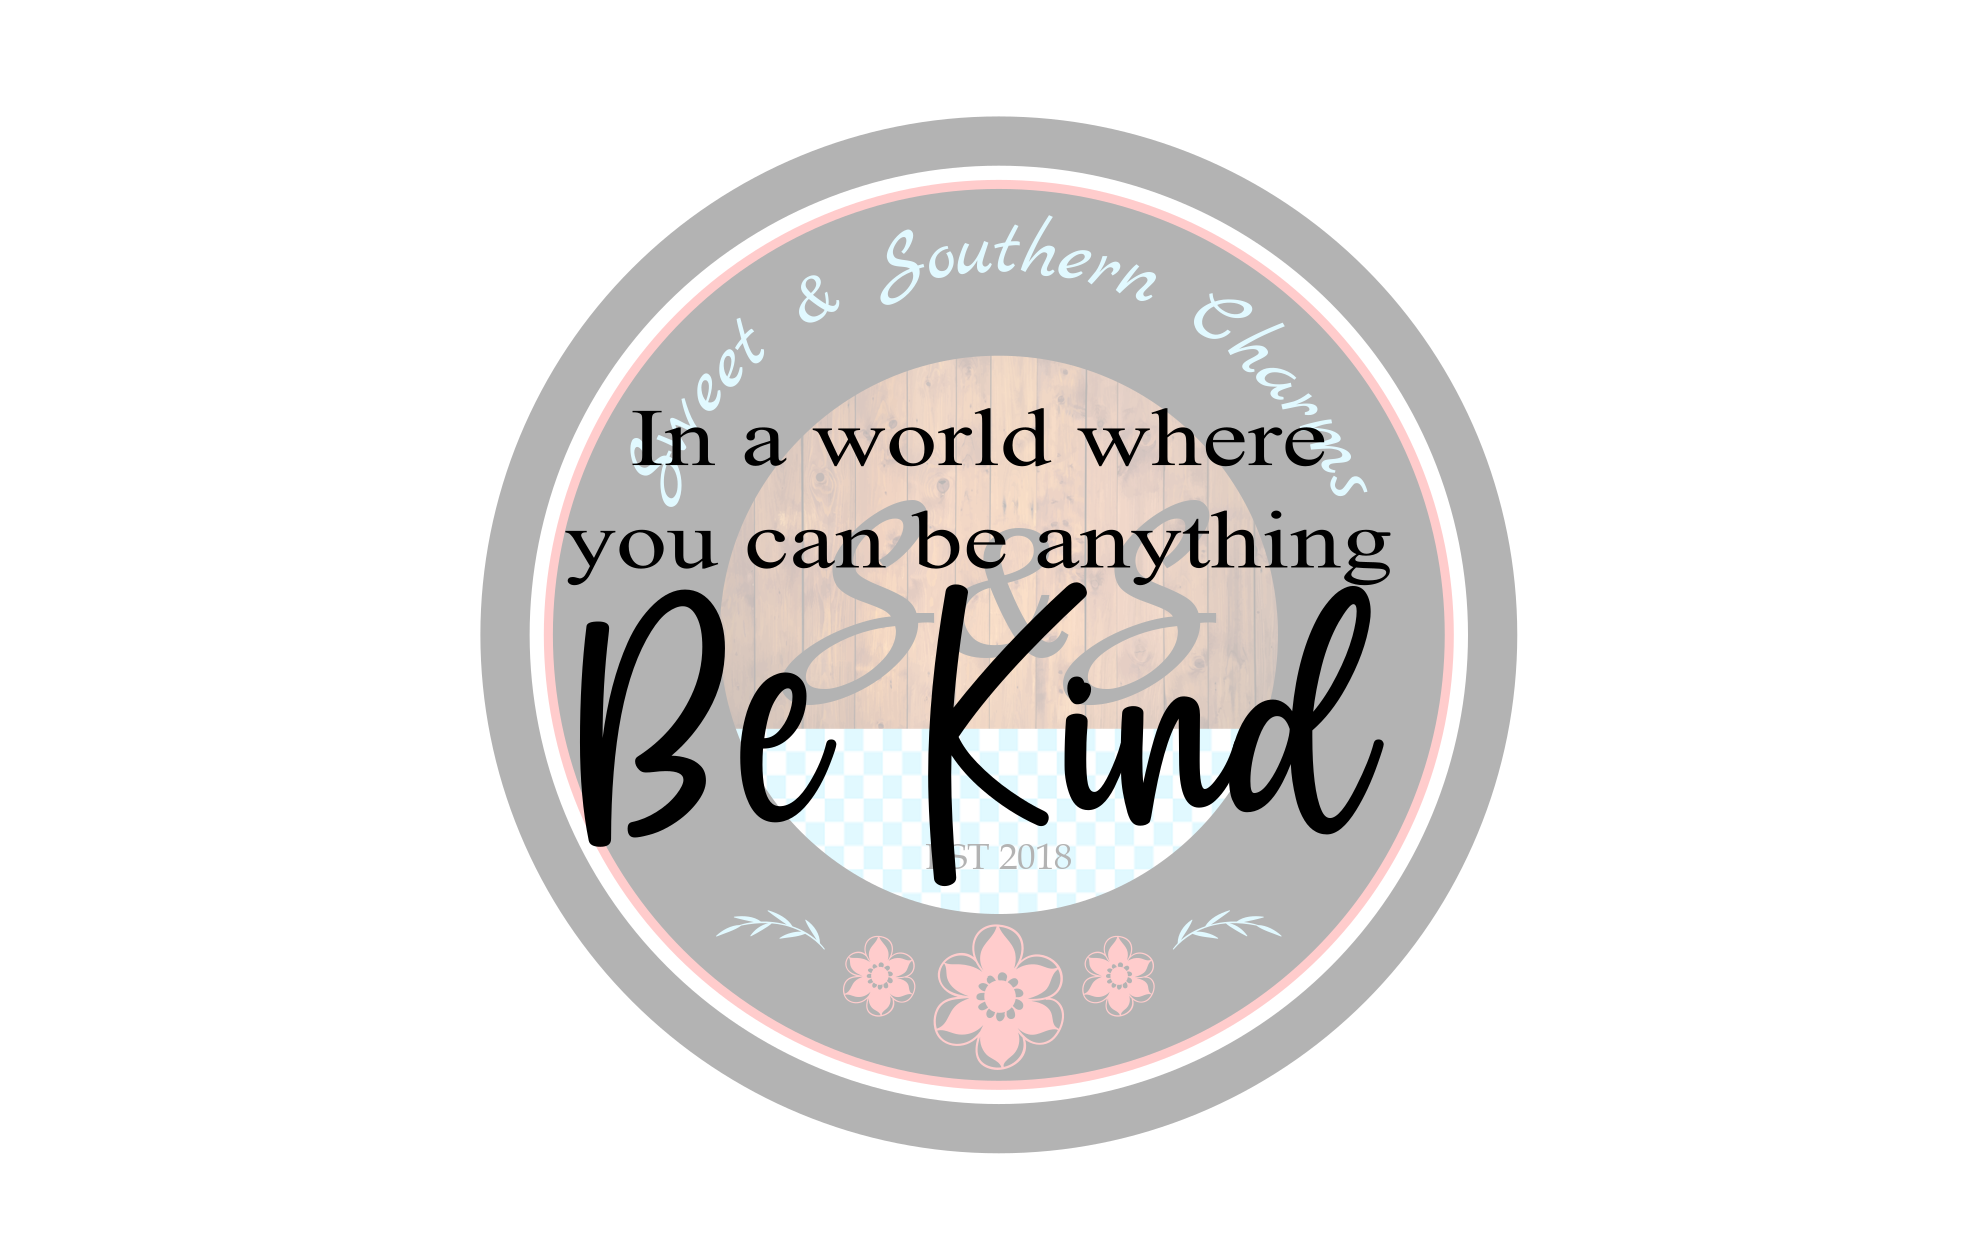 Download Free Be Kind Svg Graphic By Jenna Monaghan Creative Fabrica for Cricut Explore, Silhouette and other cutting machines.